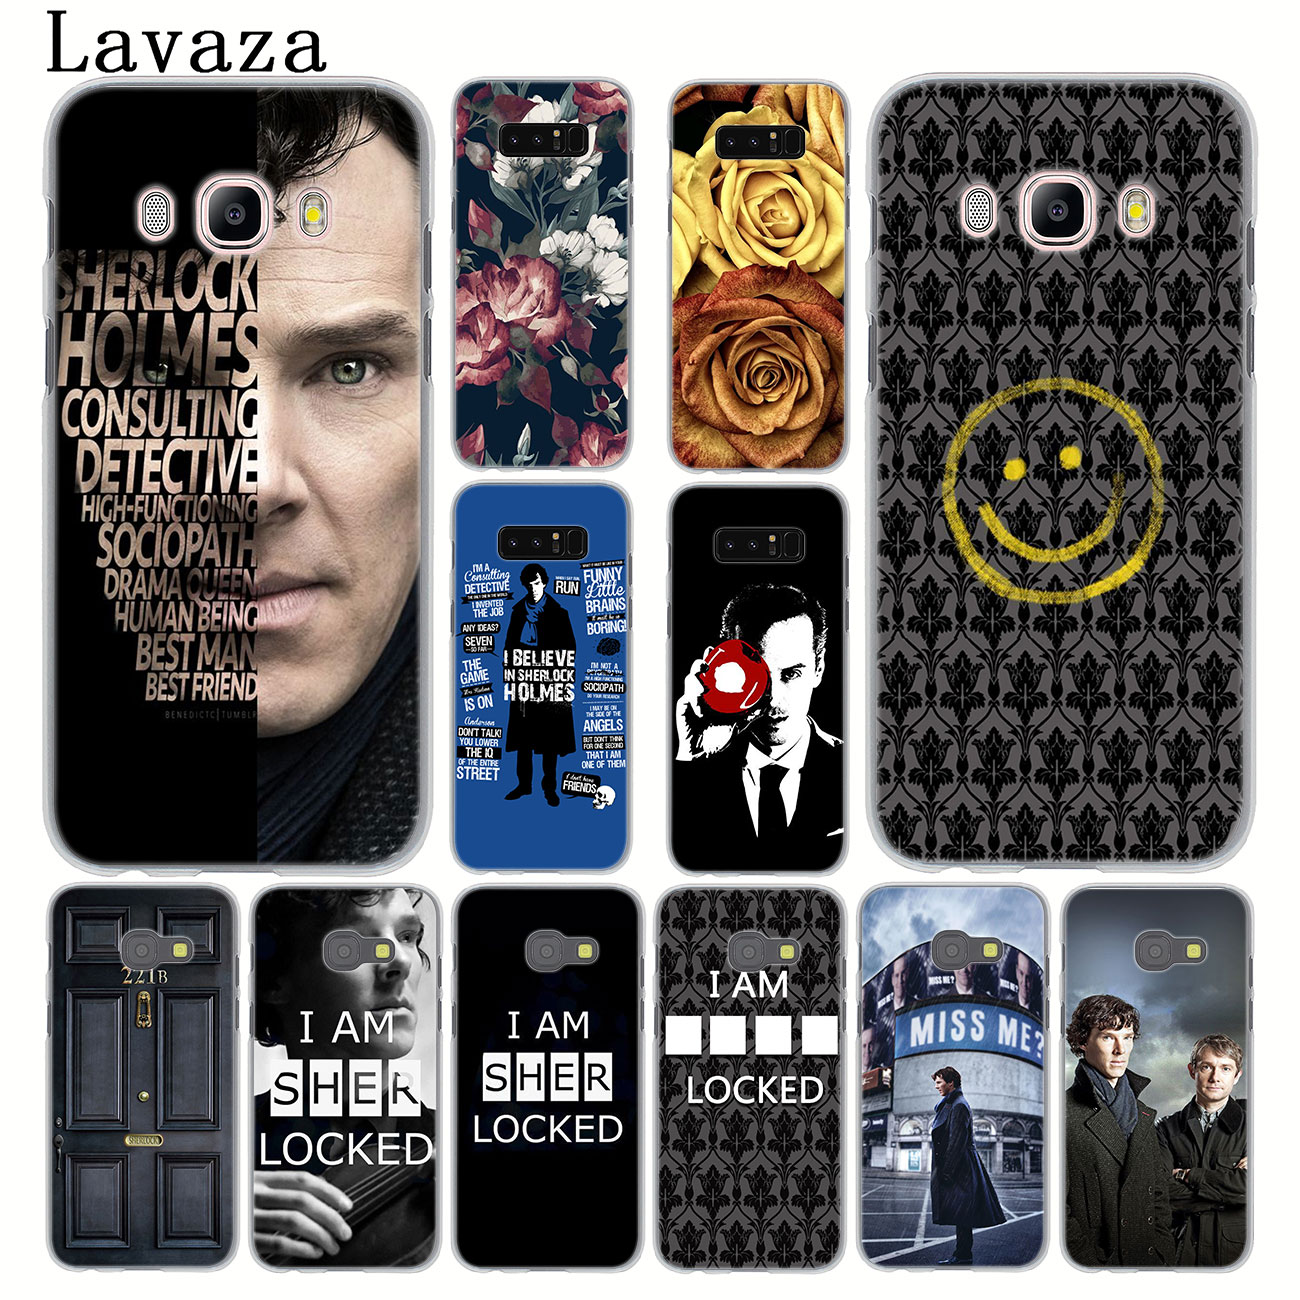 221B Sherlock Holmes <font><b>Hard</b></font> Phone <font><b>Case</b></font> for <font><b>Samsung</b></font> Galaxy Note 10 9 8 A9 A8 A7 A6 Plus 2018 A3 <font><b>A5</b></font> 2017 <font><b>2016</b></font> 2015 A2 Cover image